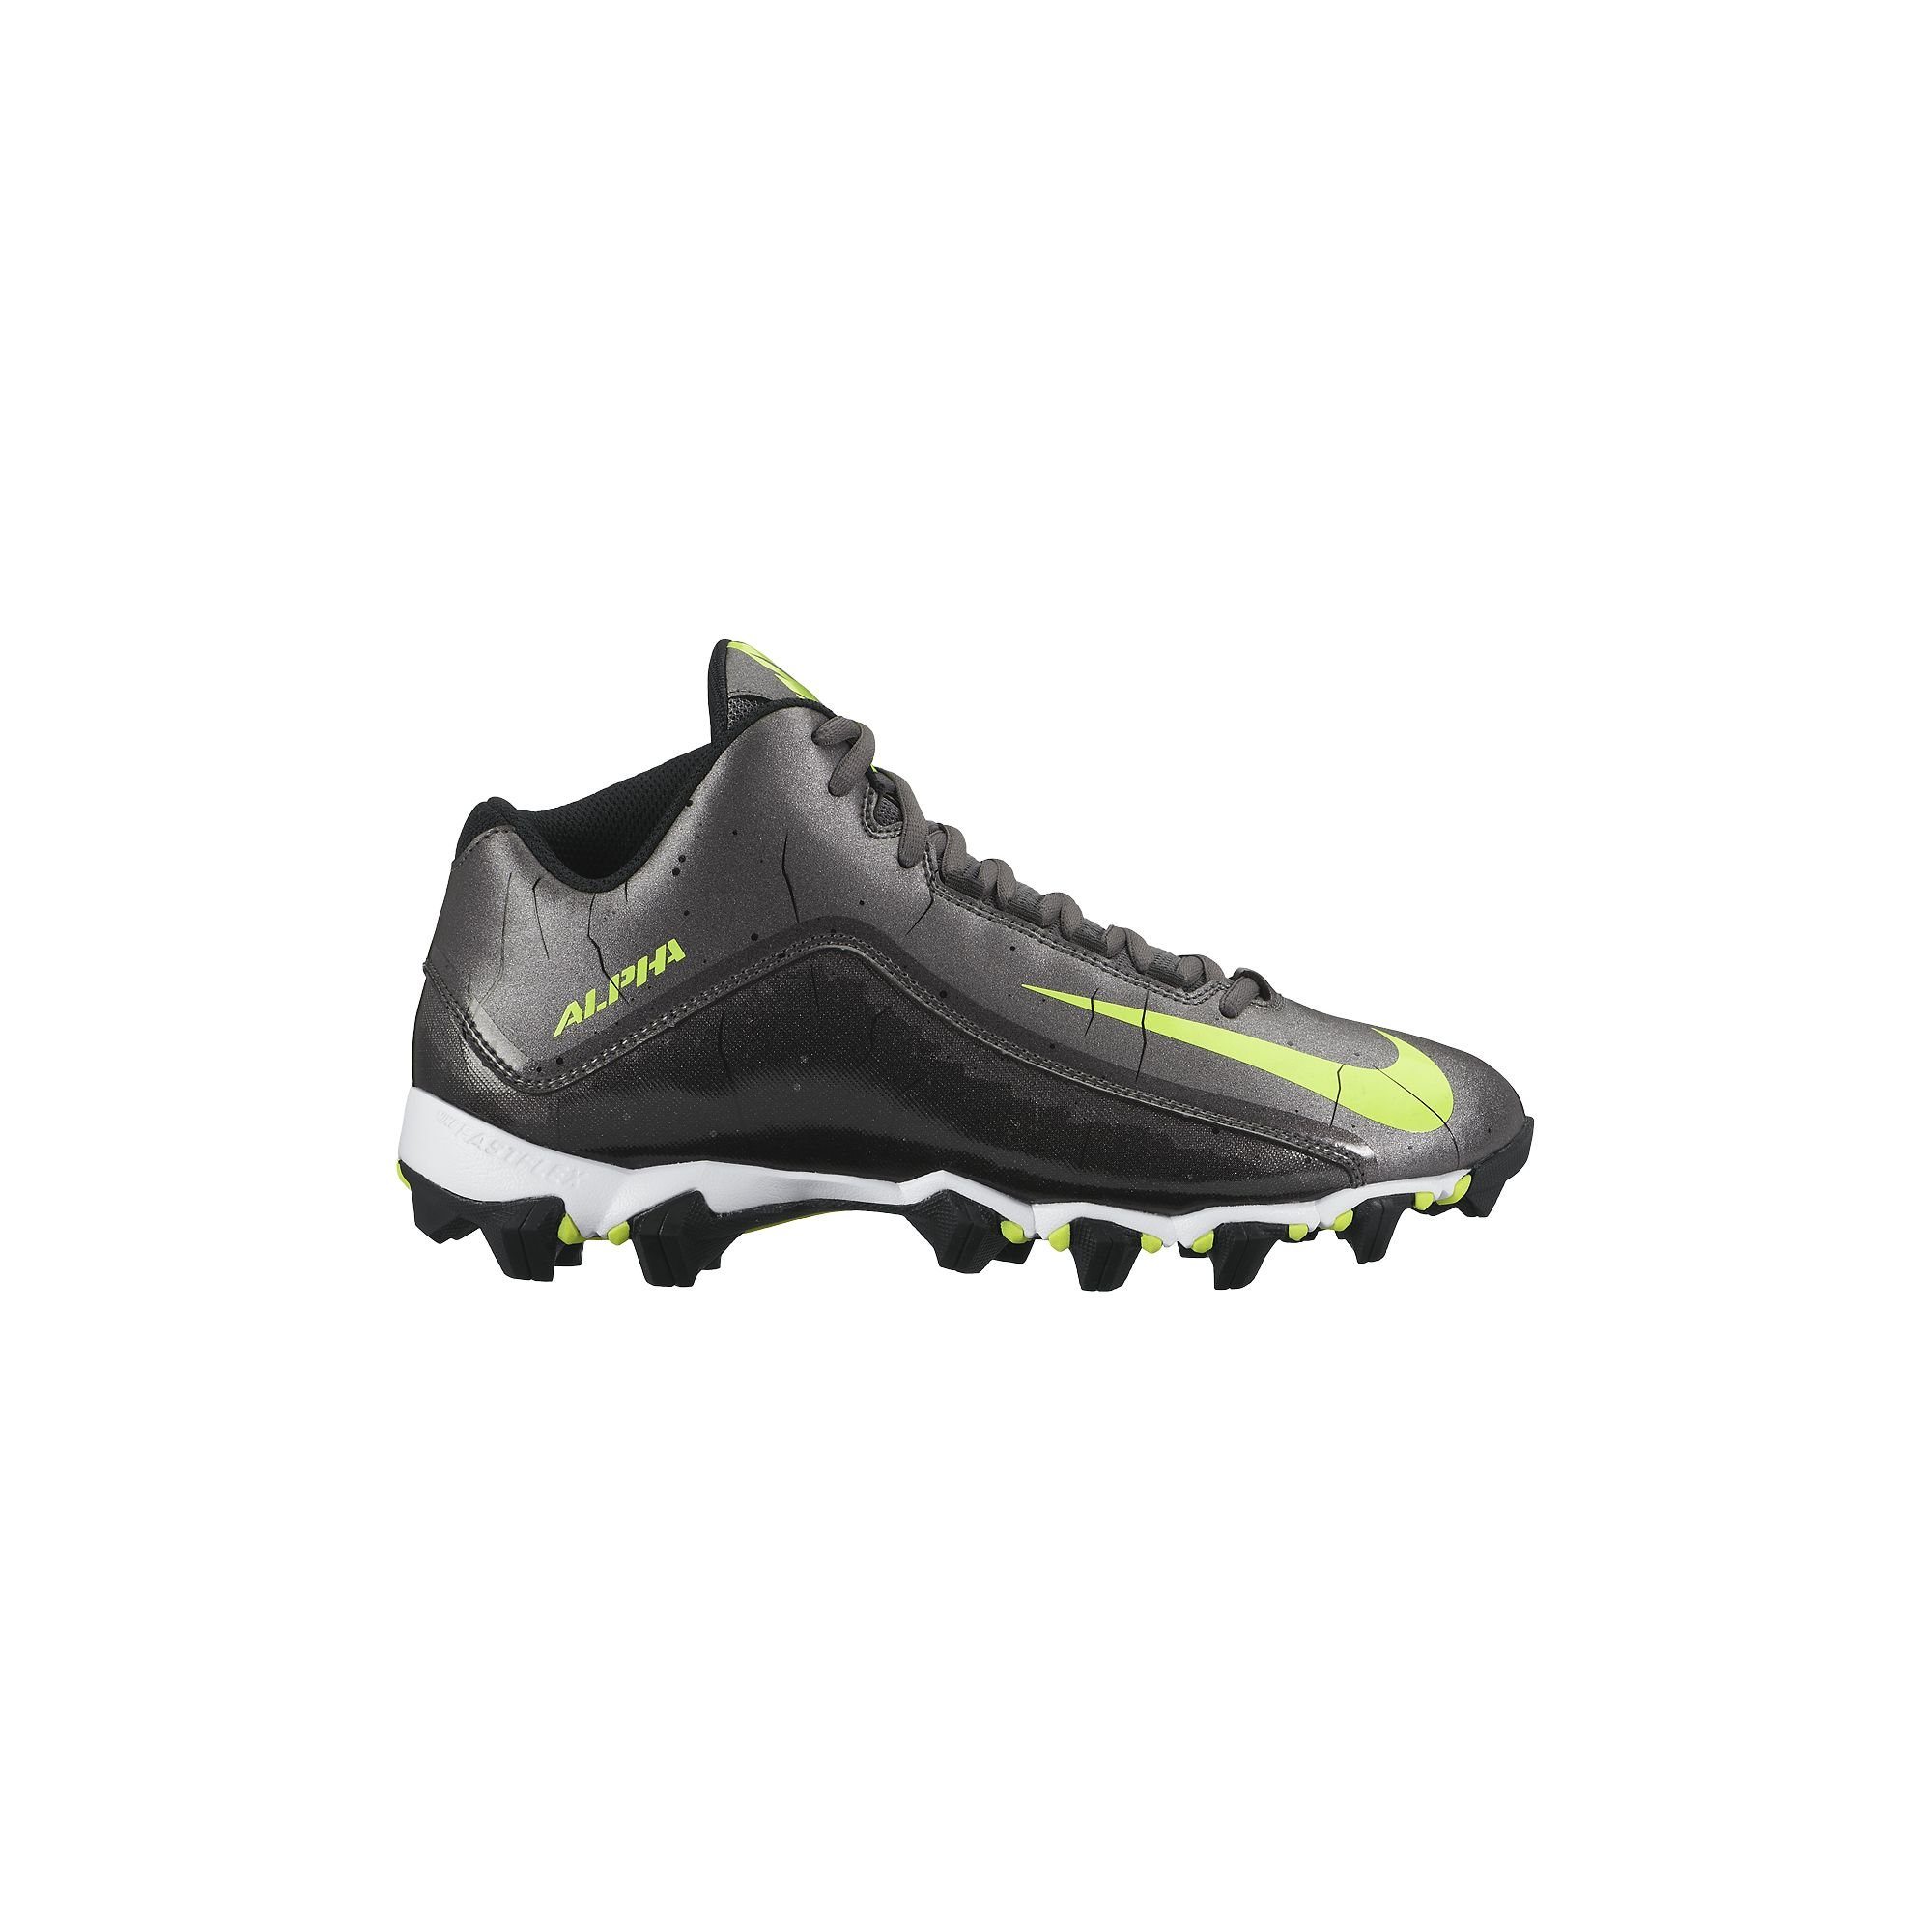 NIKE Men's Alpha Shark 2 Three-Quarter Football Cleat Dark Grey/Black/White Size 12 M US by NIKE